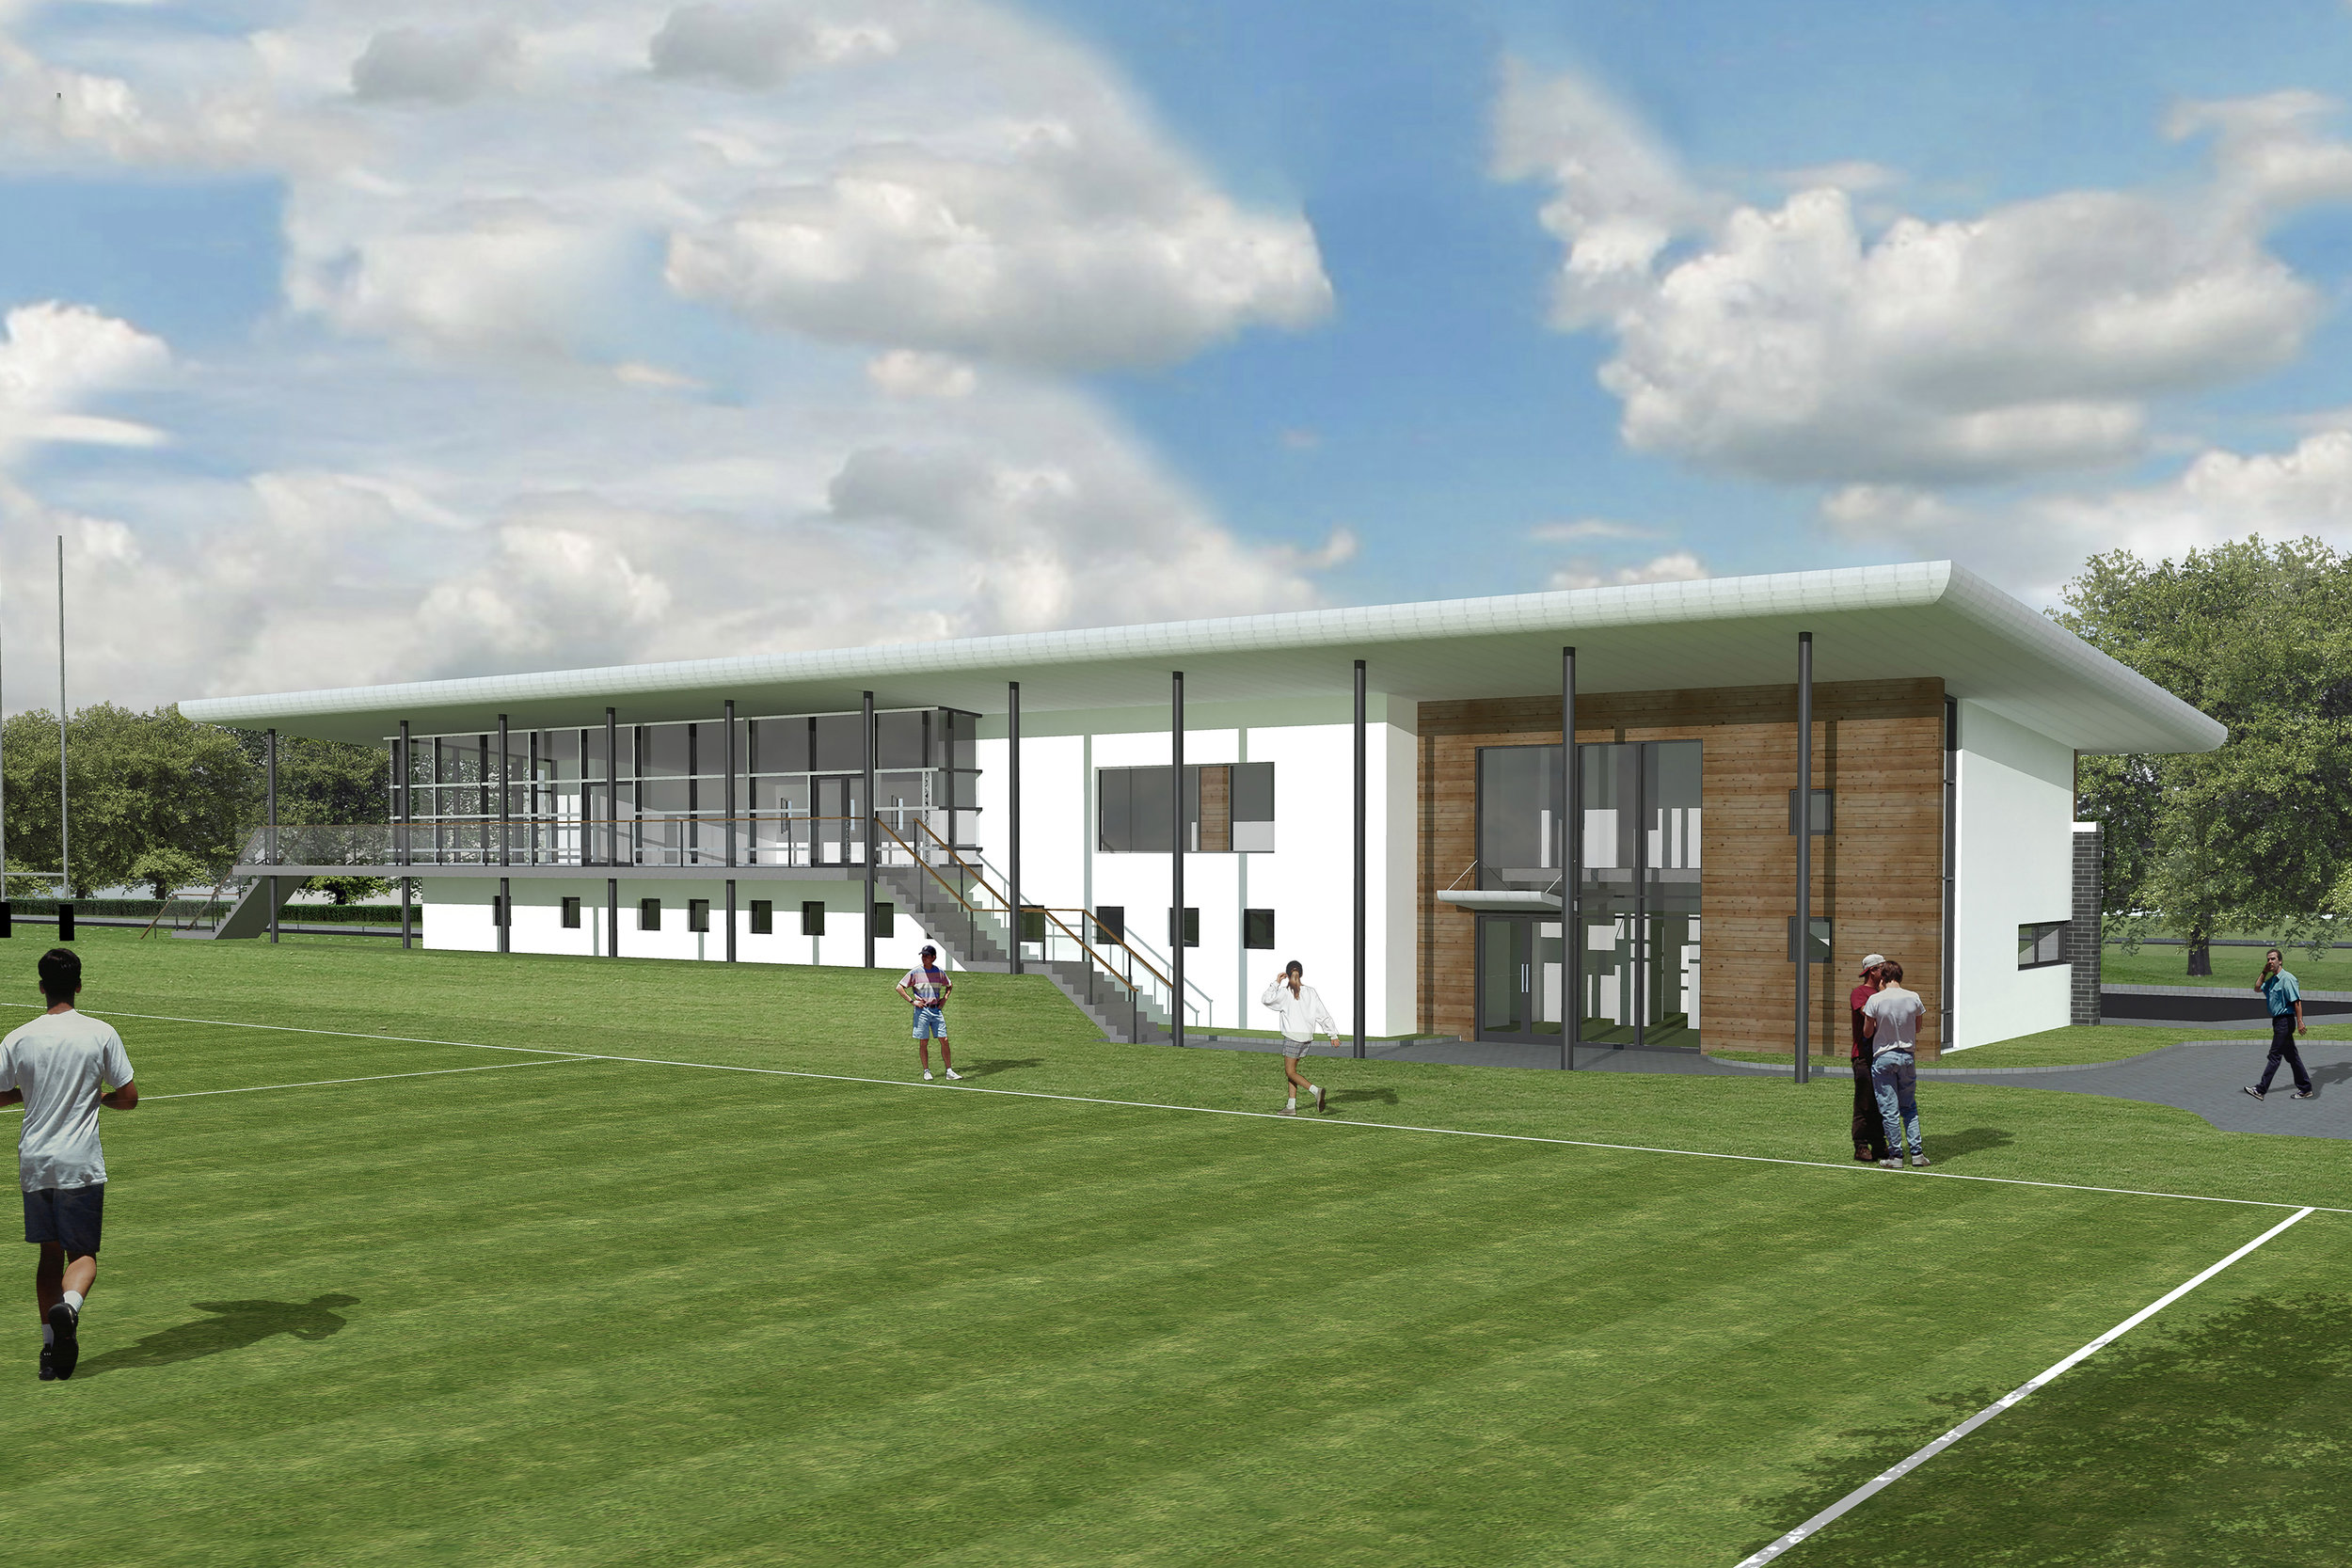 Paul_McAlister_Architects_Rugby_entrance.jpg